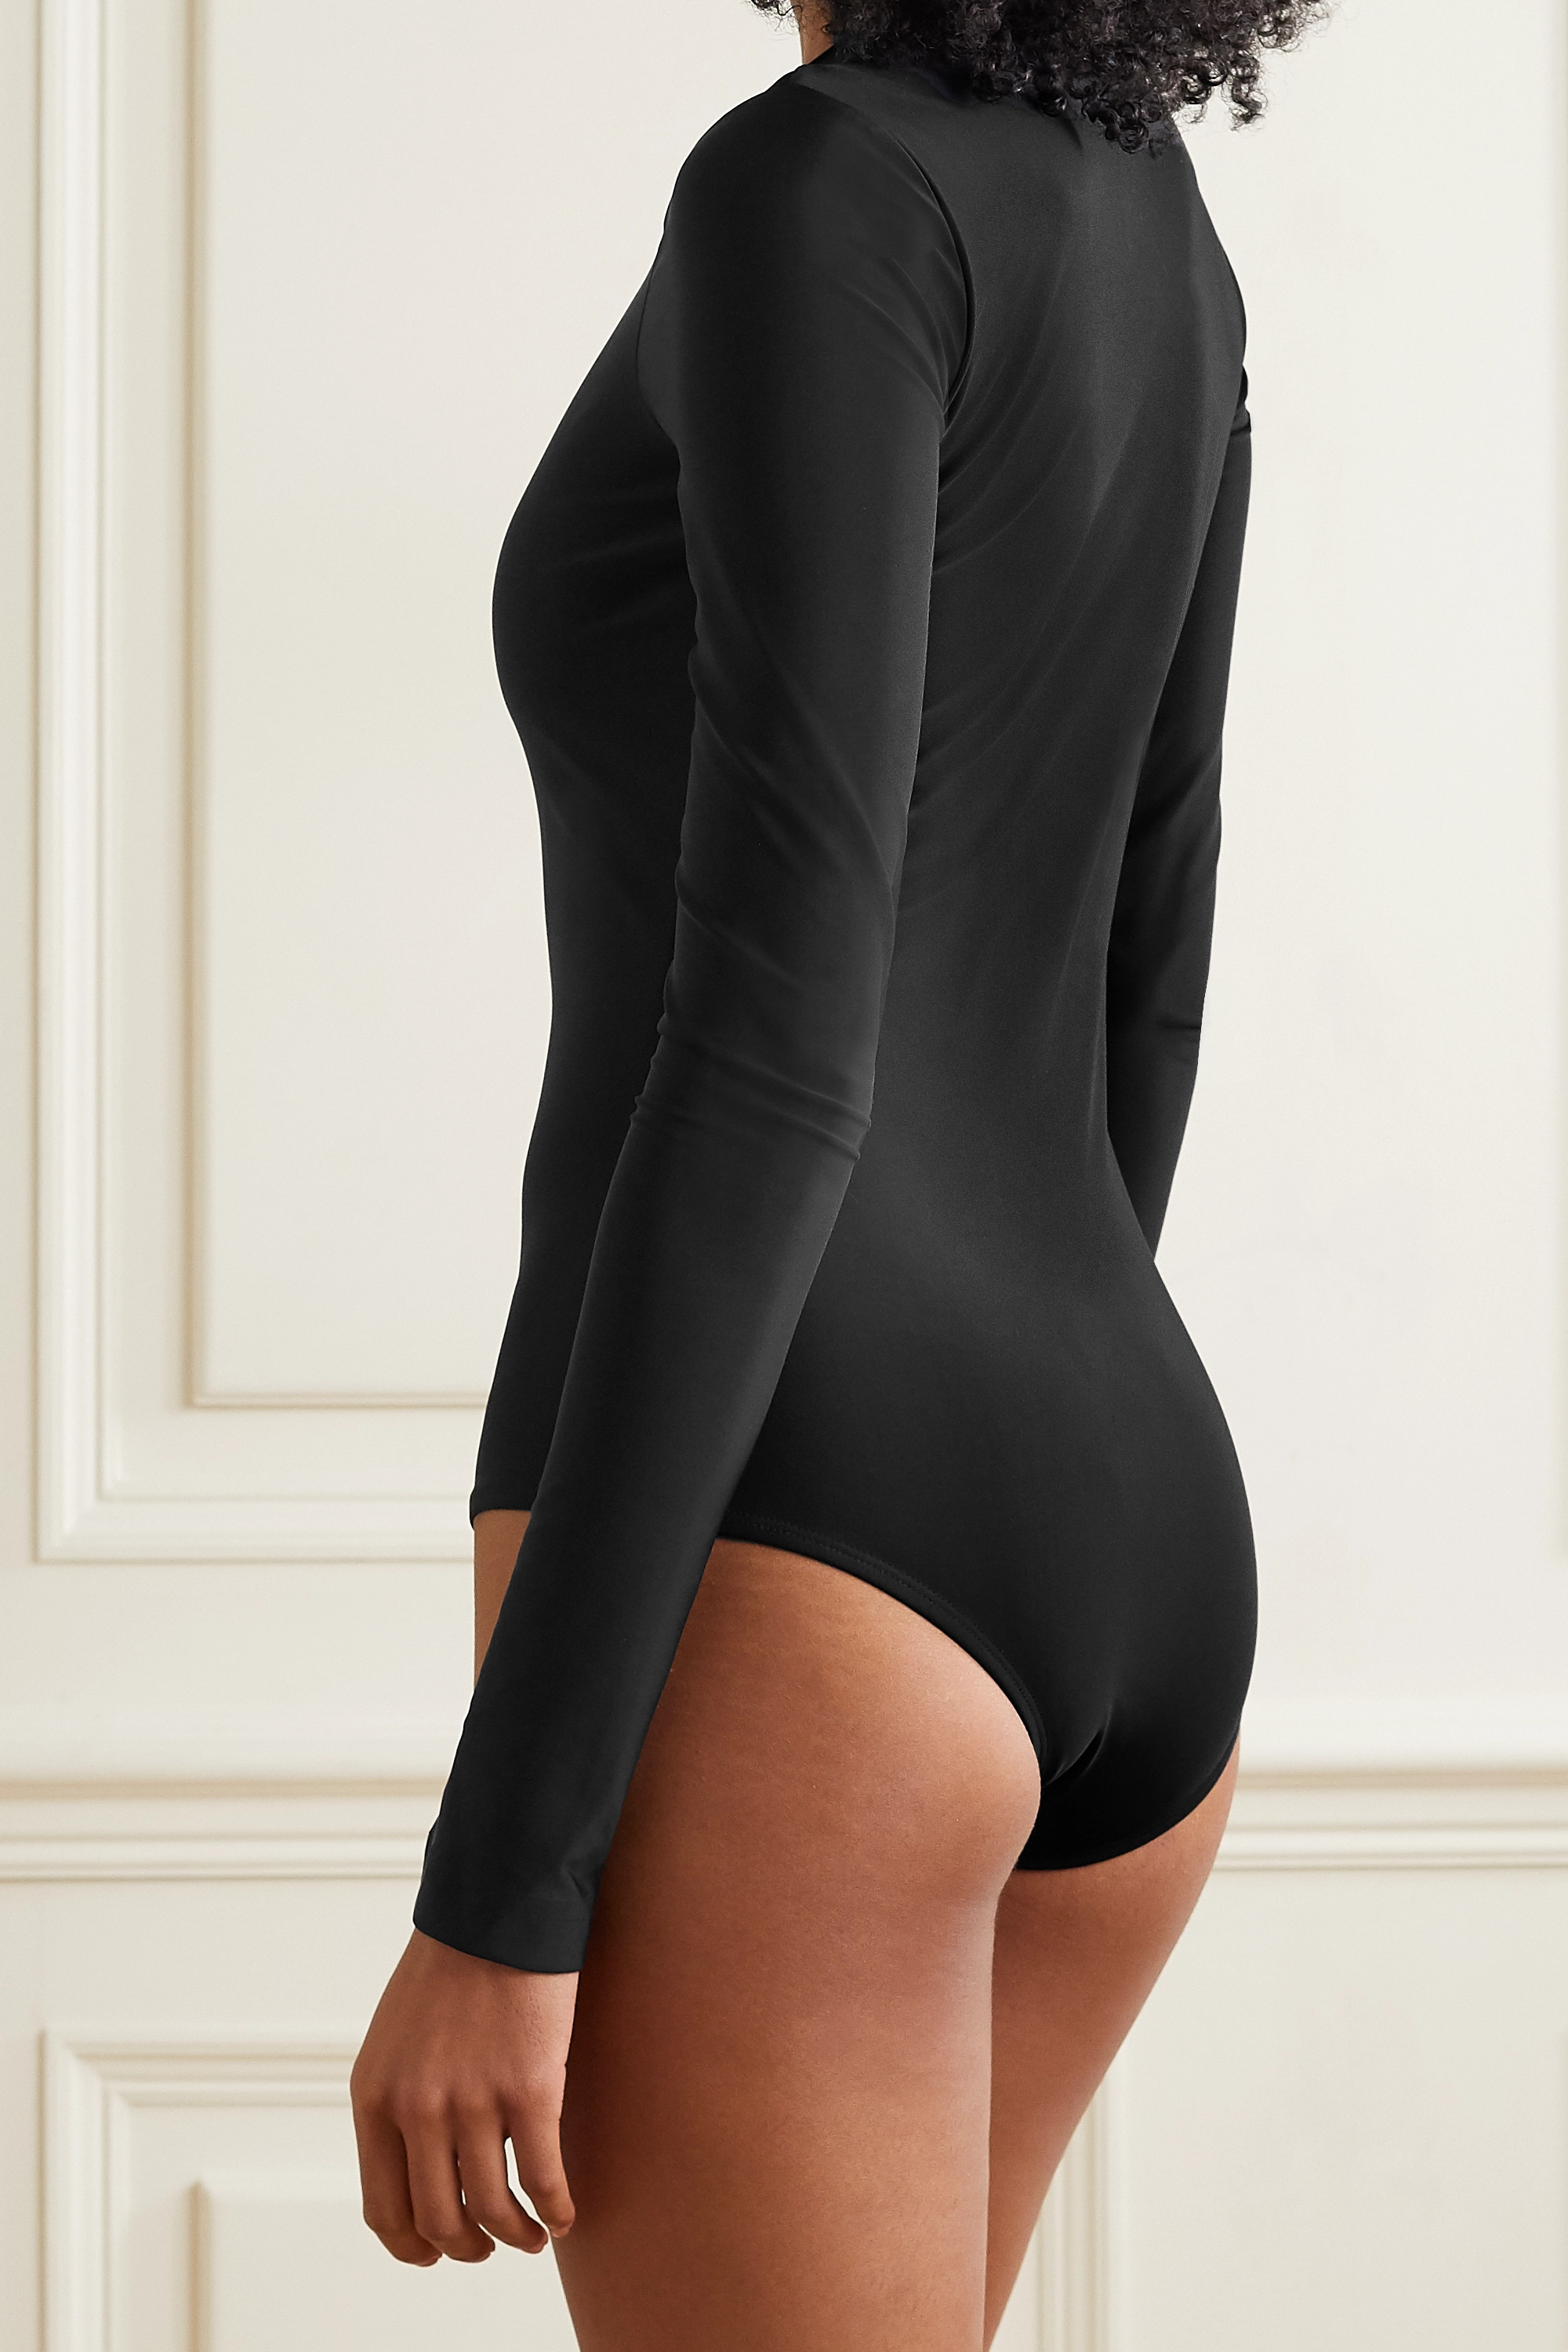 Cover + NET SUSTAIN stretch recycled swimsuit